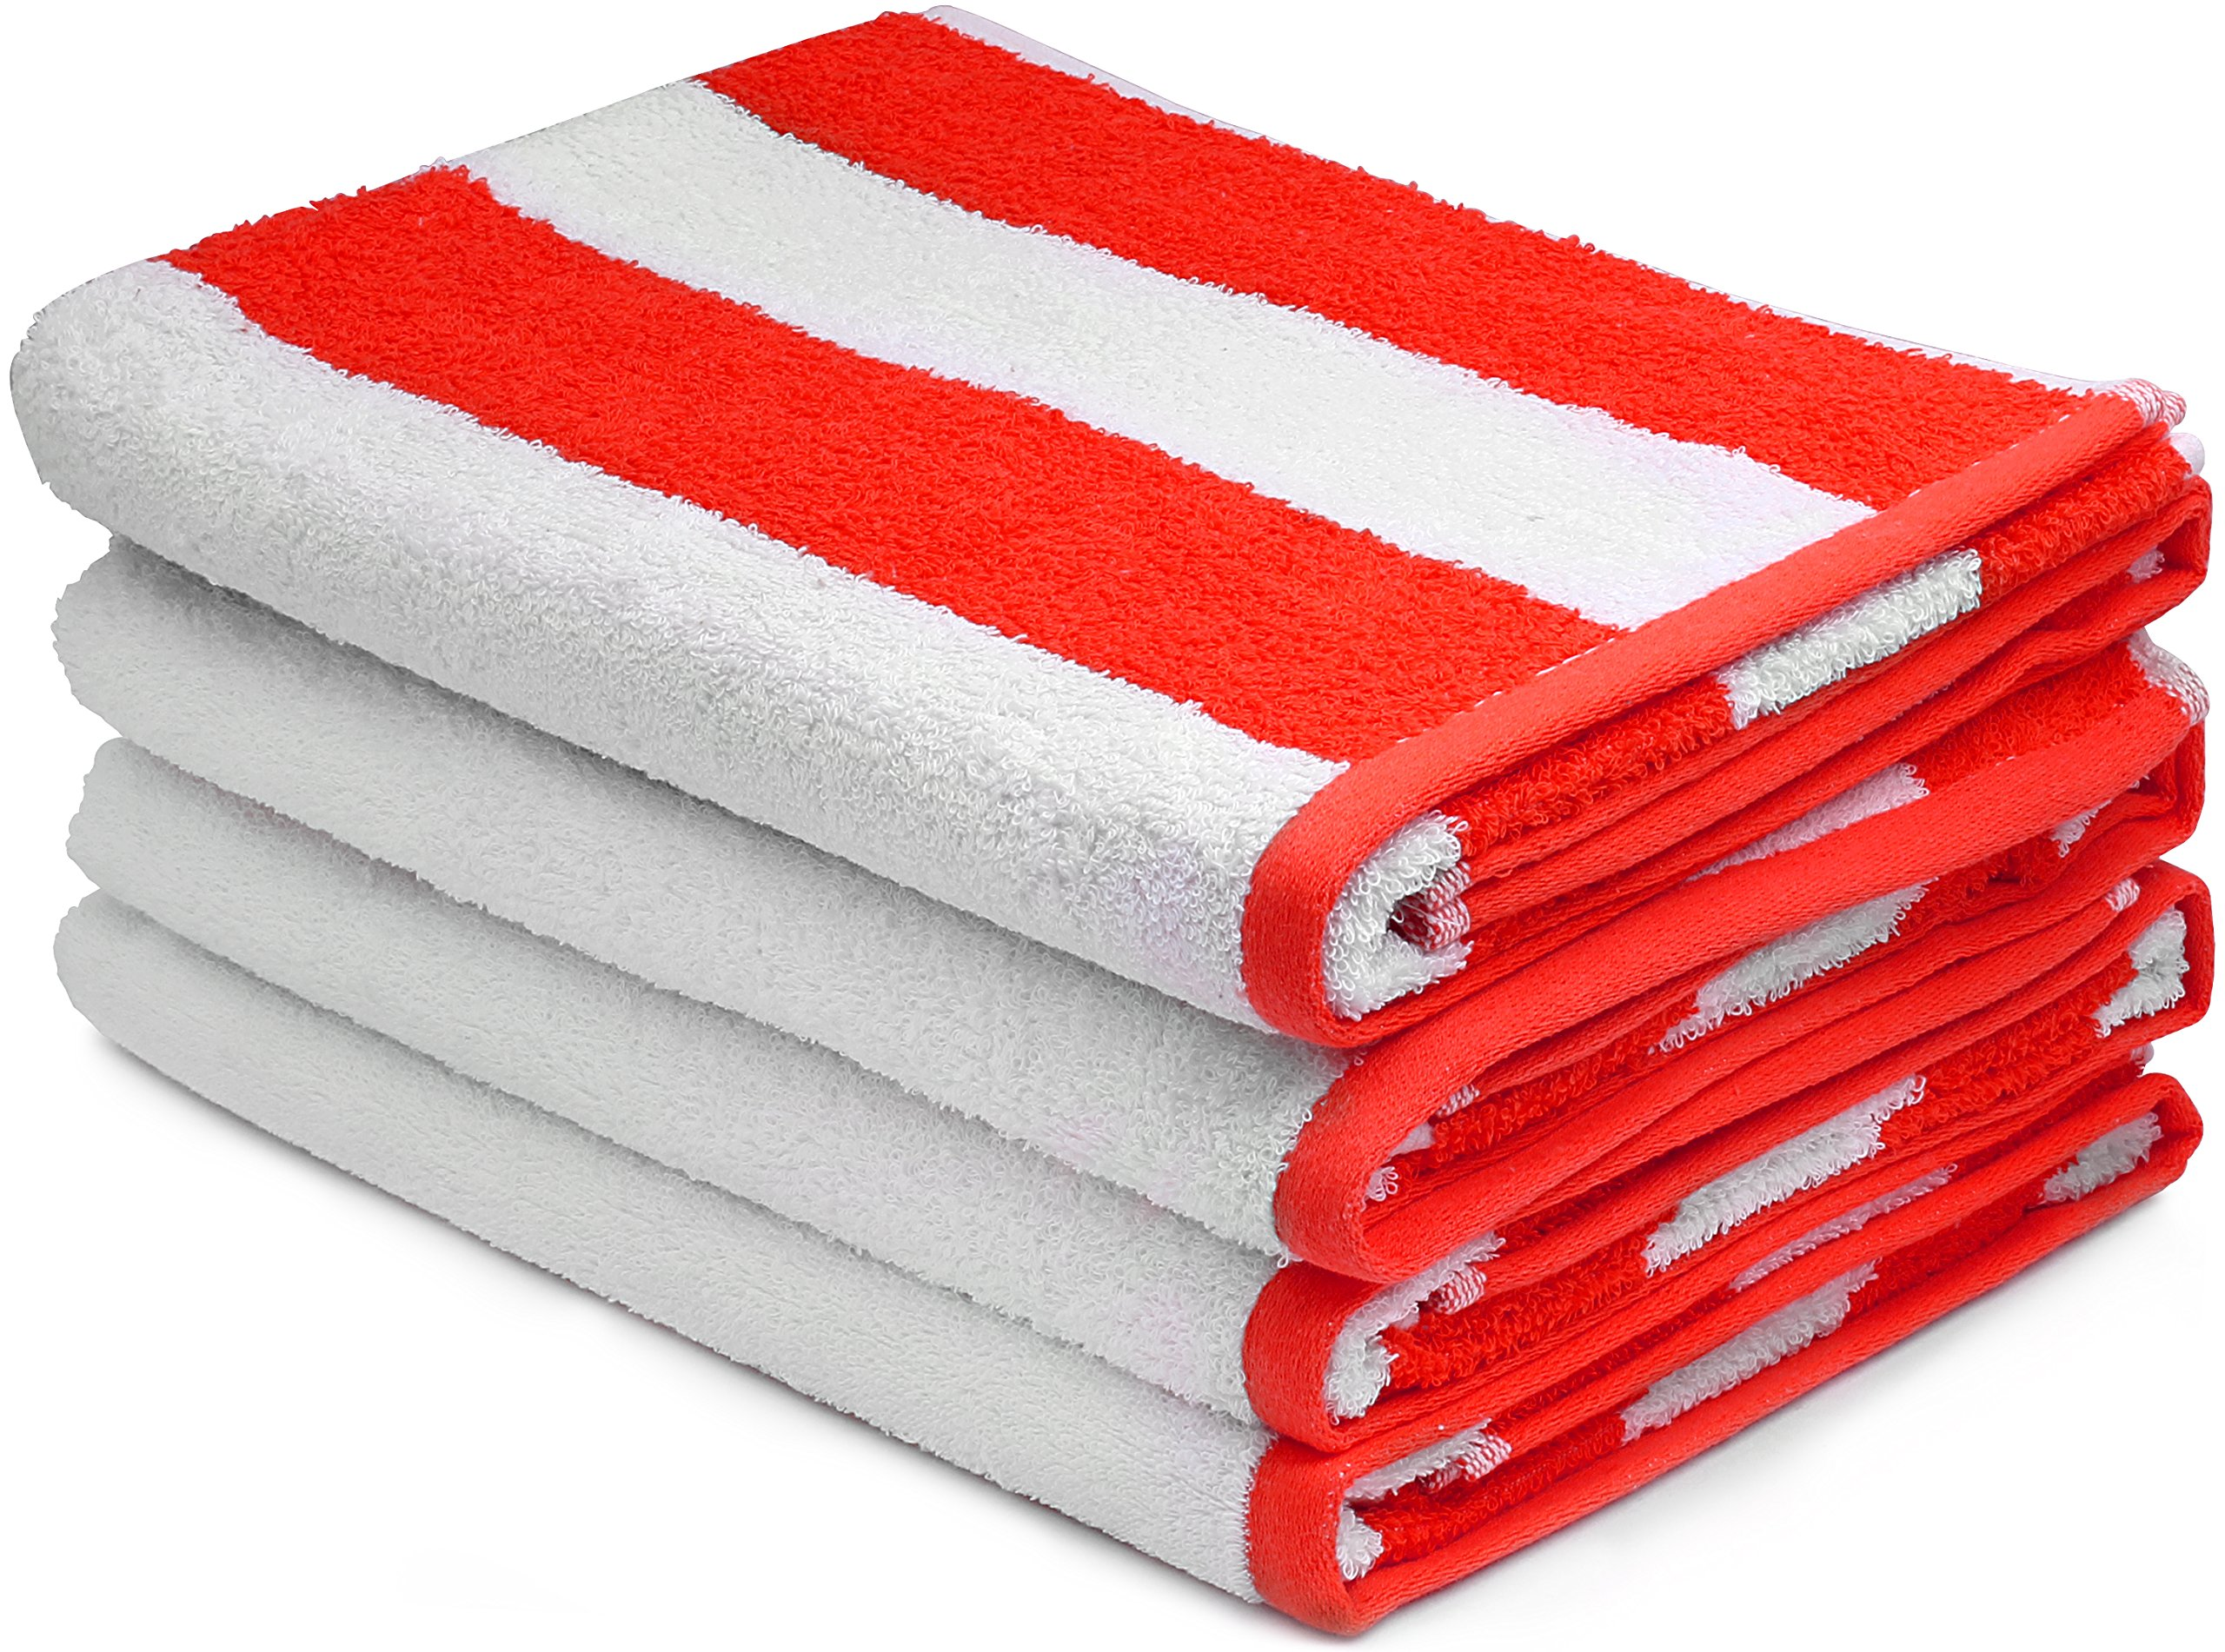 Utopia Towels Large Beach Towel, Pool Towel, in Cabana Stripe - (Red, 4 Pack, 30x60 Inches) - Cotton